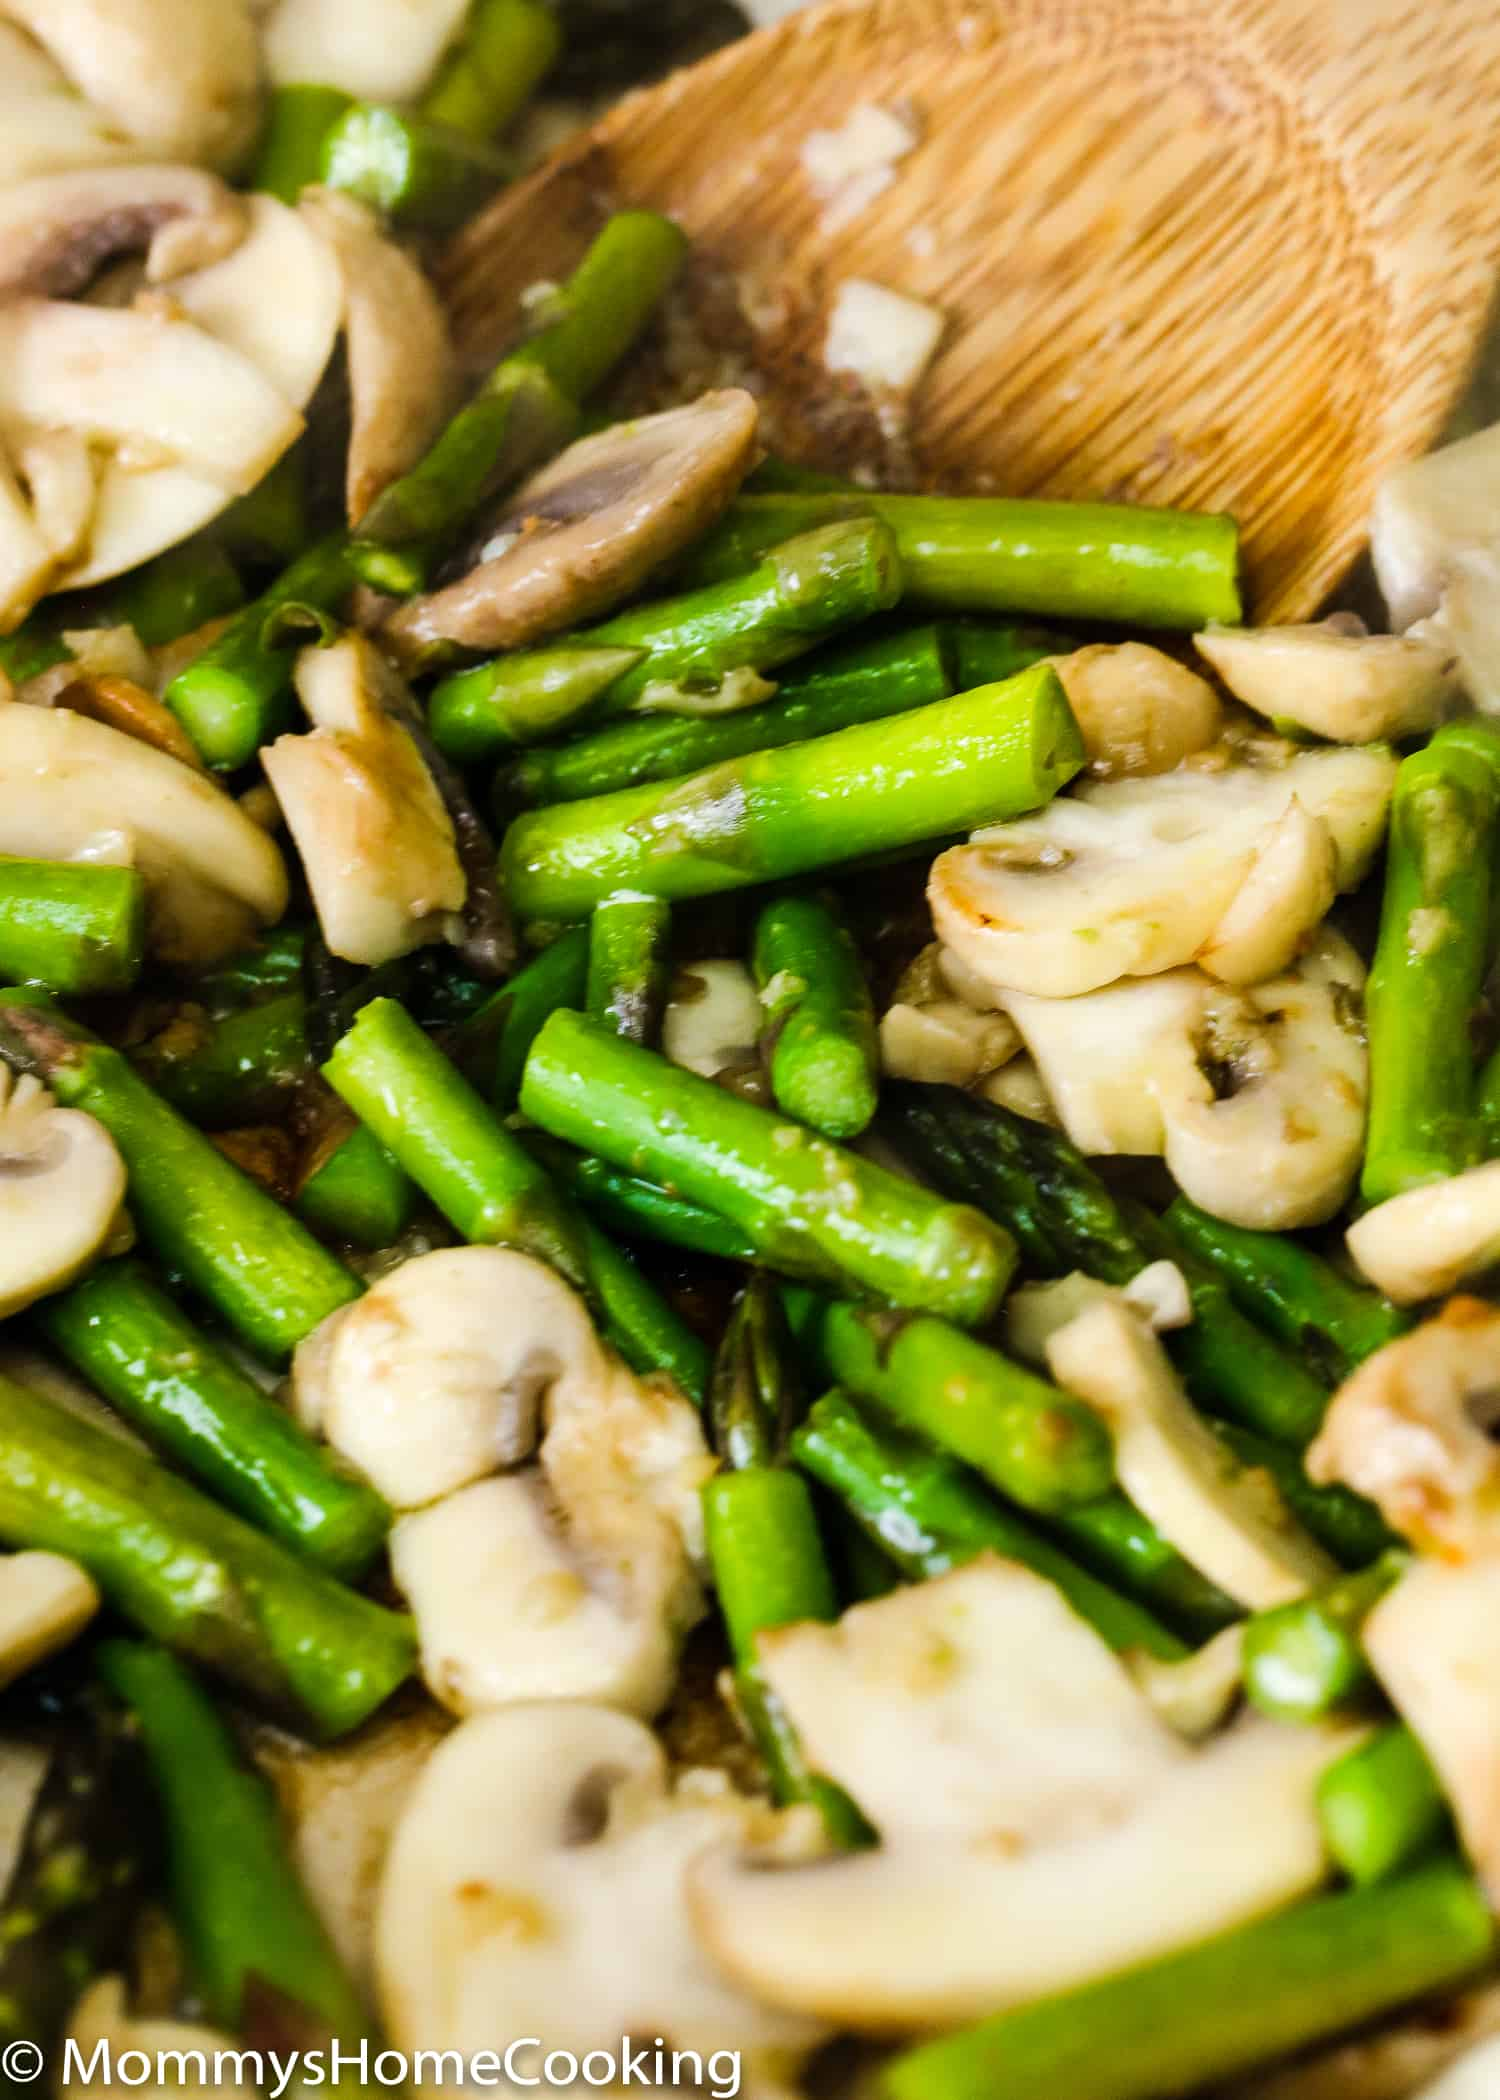 This Easy Healthy Chicken and Asparagus Skillet recipe is quick, delicious and satisfying! It's made from scratch with no processed ingredients. Ready in less than 30 minutes. Perfect meal prep recipe to keep your taste buds happy and your belly full. Whole30 compliant. https://mommyshomecooking.com